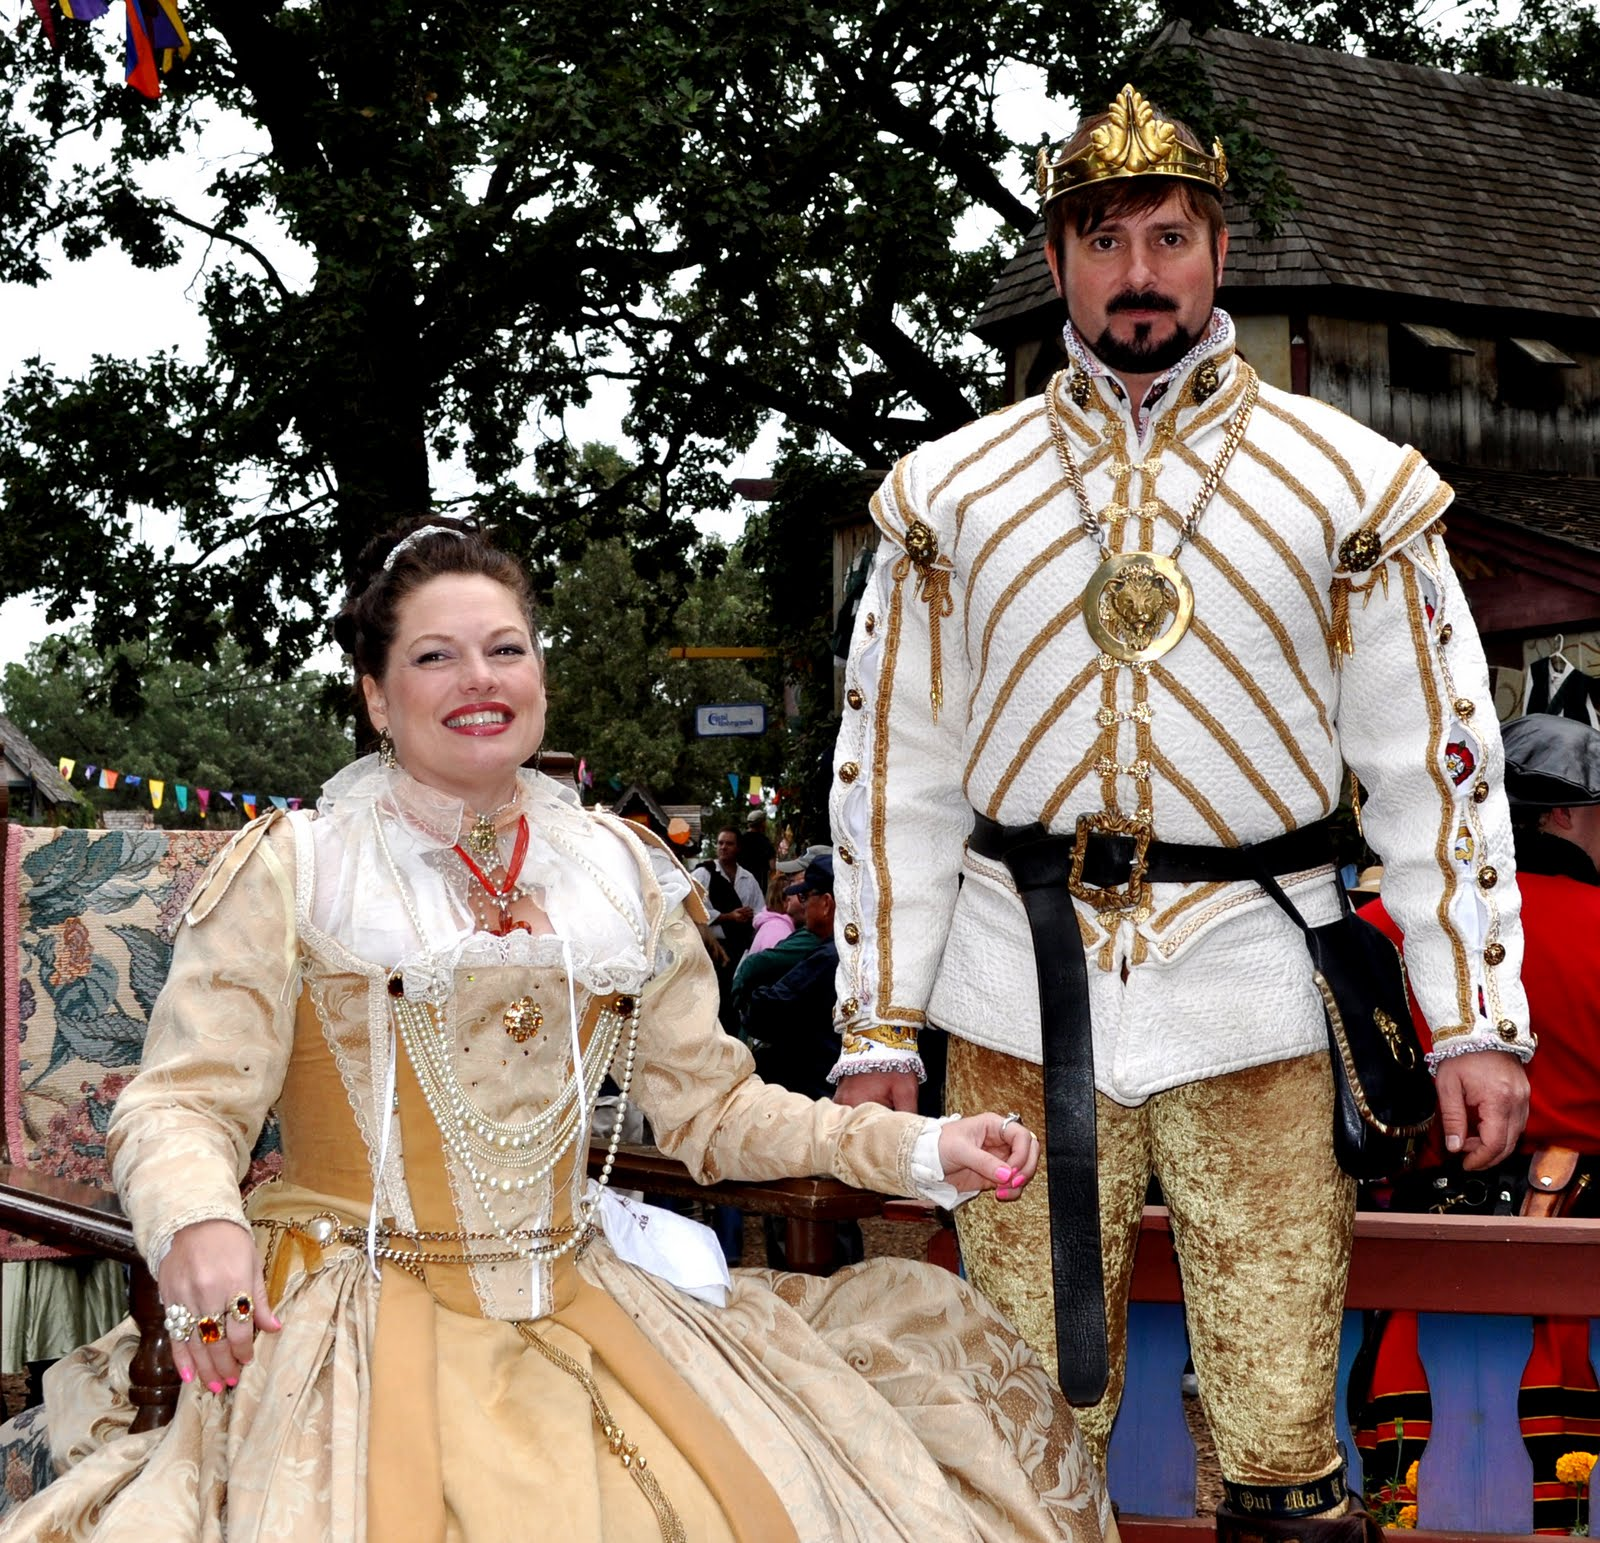 Medieval King and Queen   Flickr - Photo Sharing!  Renaissance King And Queen